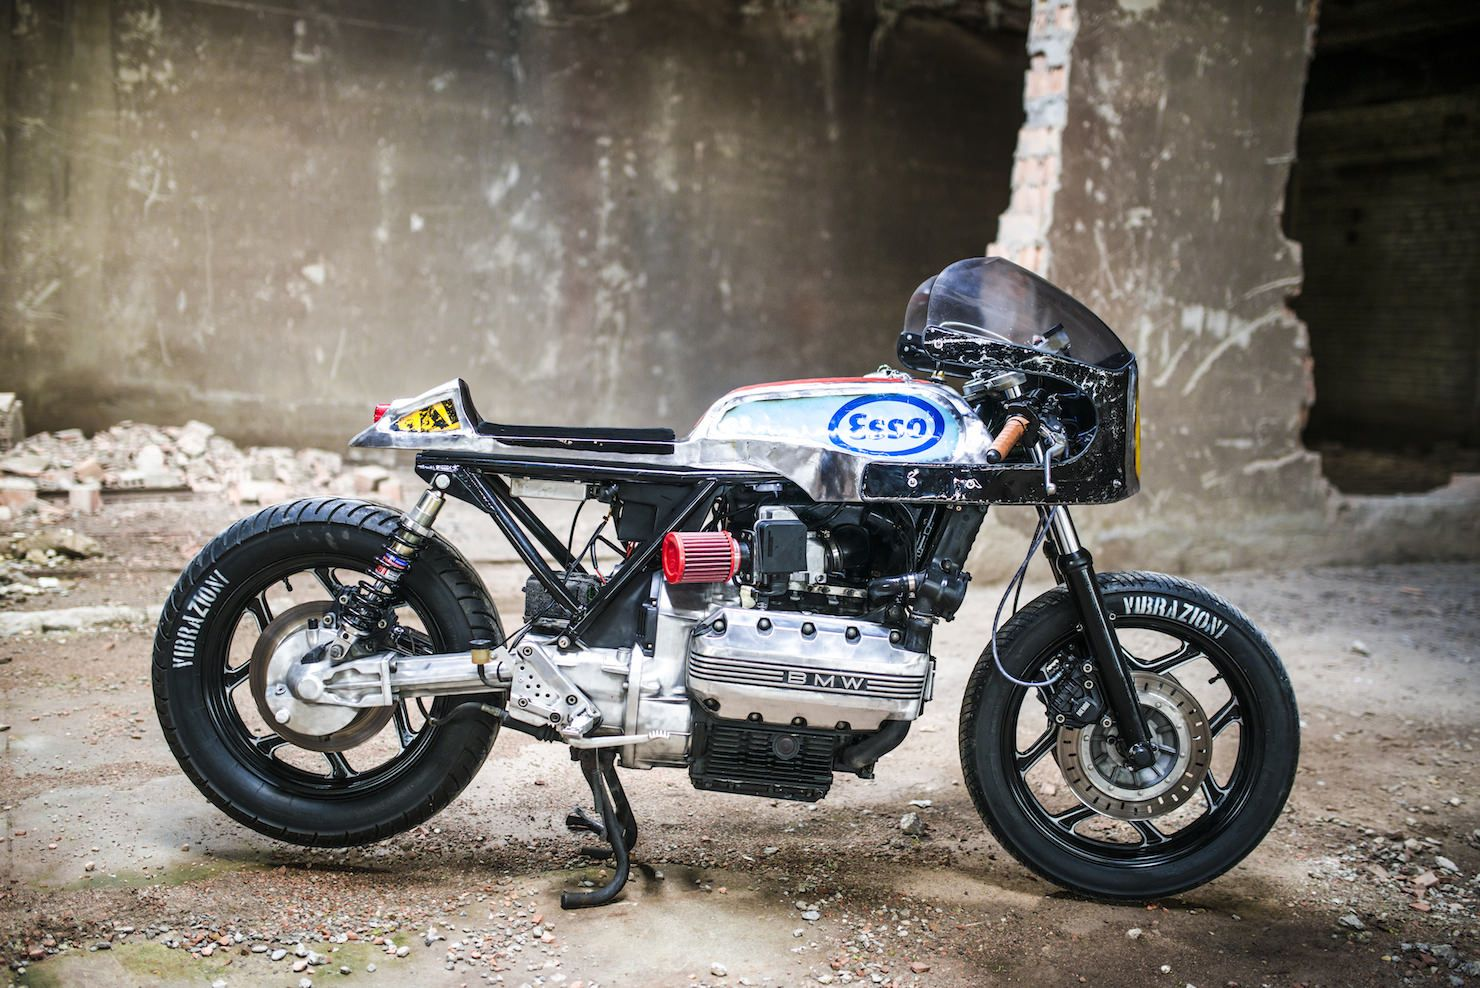 bmw k100 cafe racer bikes bmw k100 bike bmw bmw specials. Black Bedroom Furniture Sets. Home Design Ideas